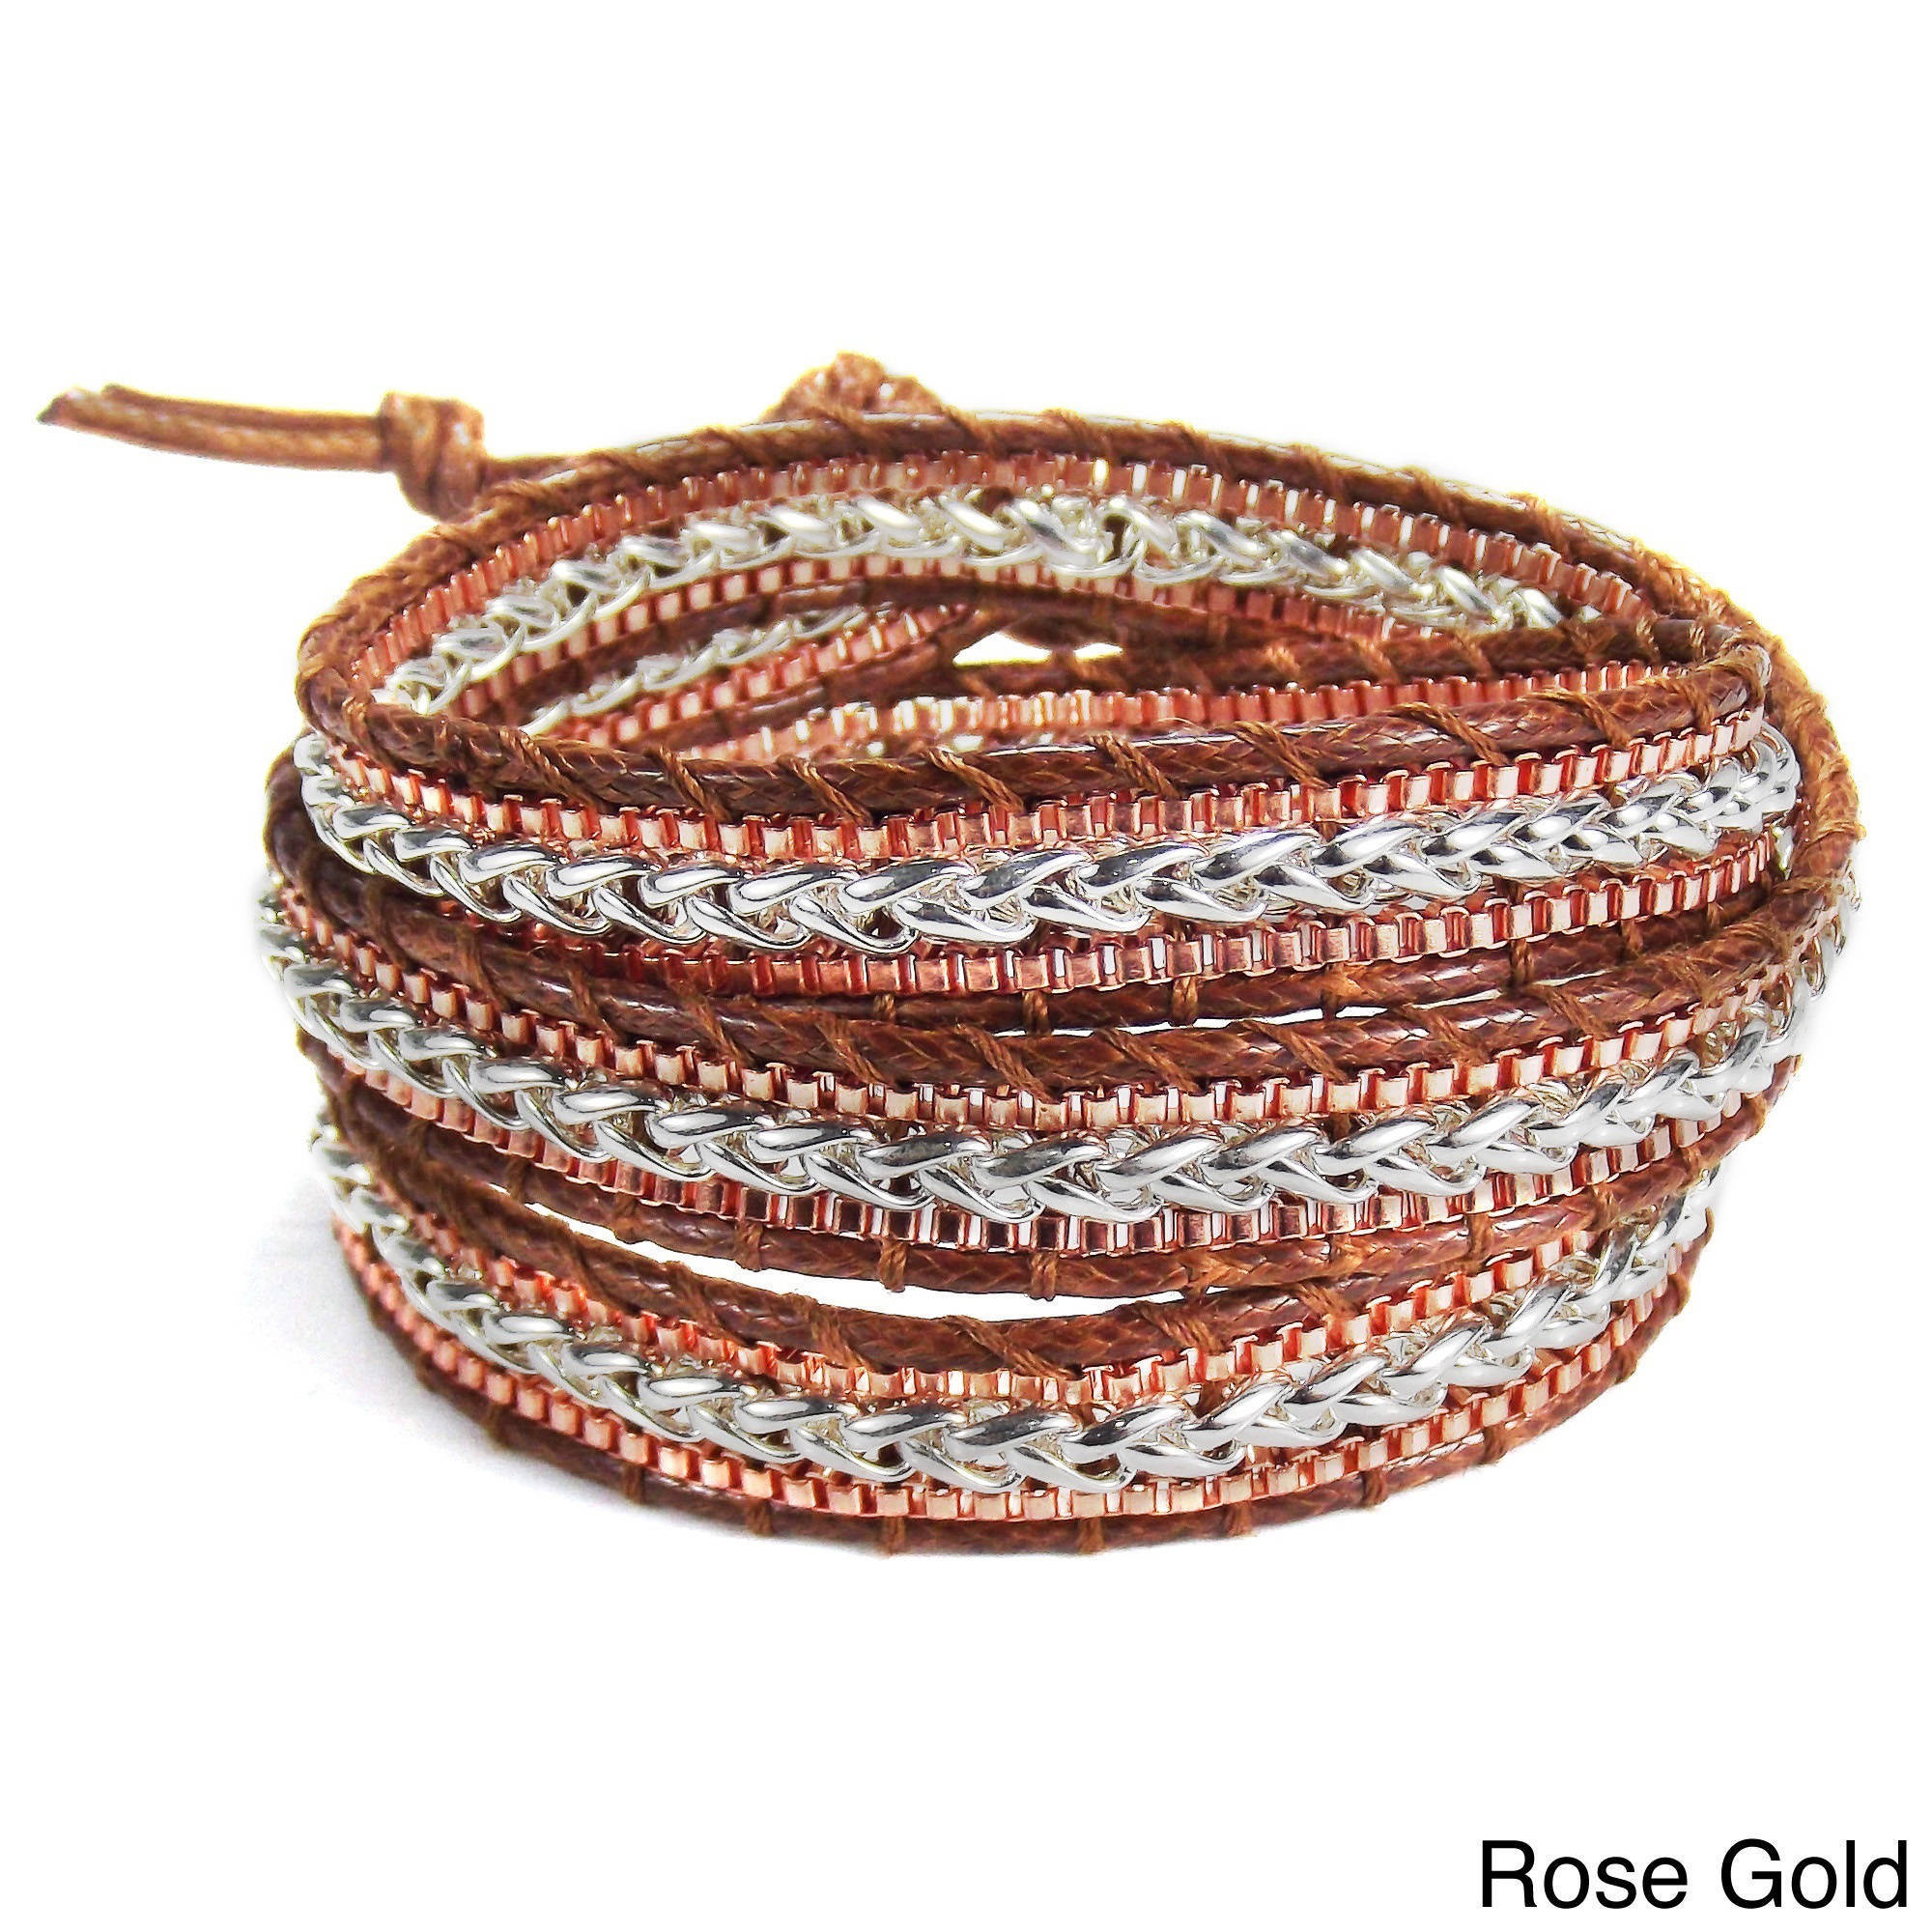 sisco berluti gold triple wrap double bracelet aquamarine pave hematite of copy products